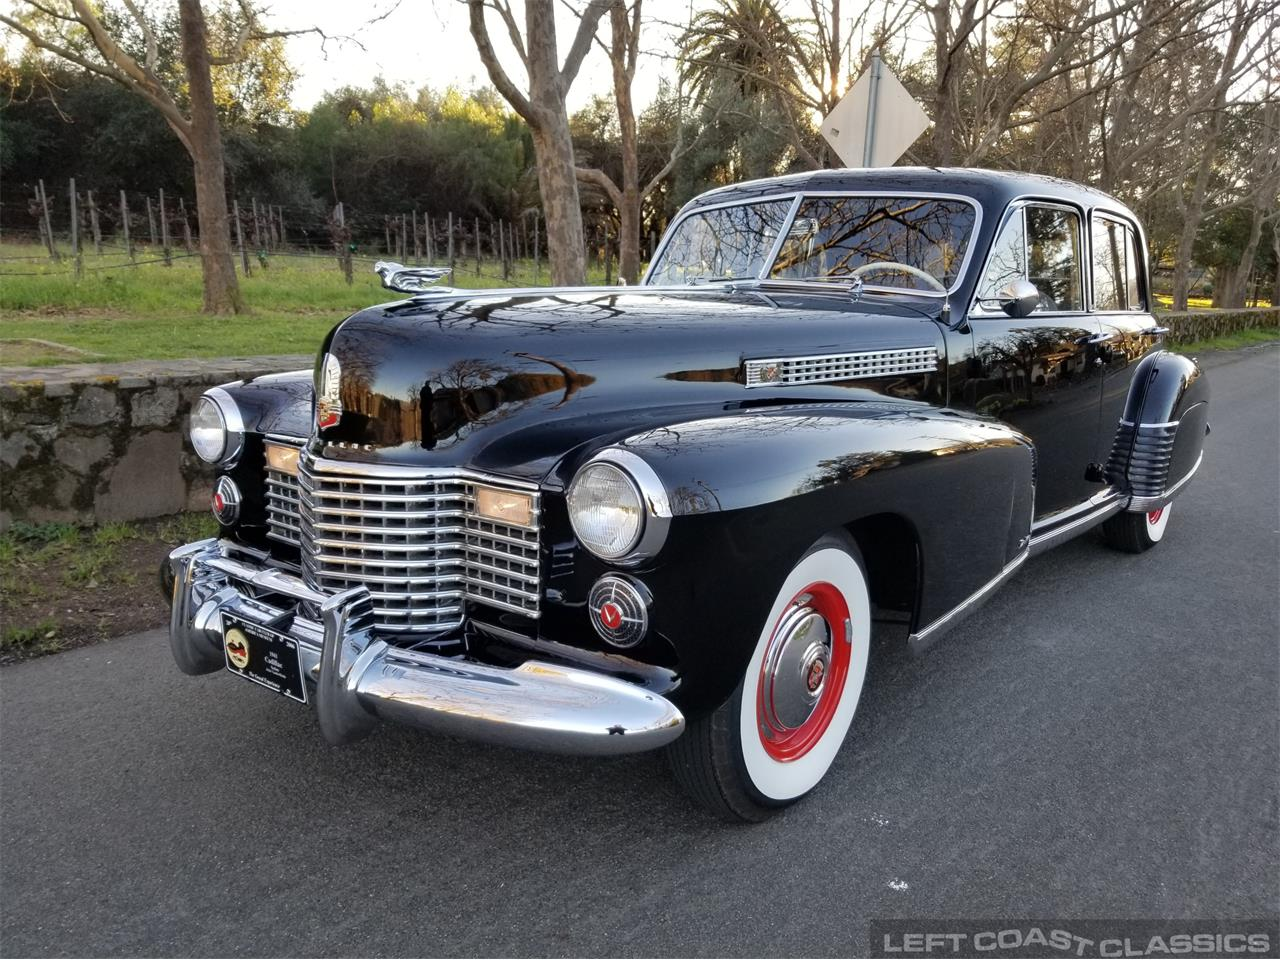 For Sale: 1941 Cadillac Fleetwood 60 Special in SONOMA, California